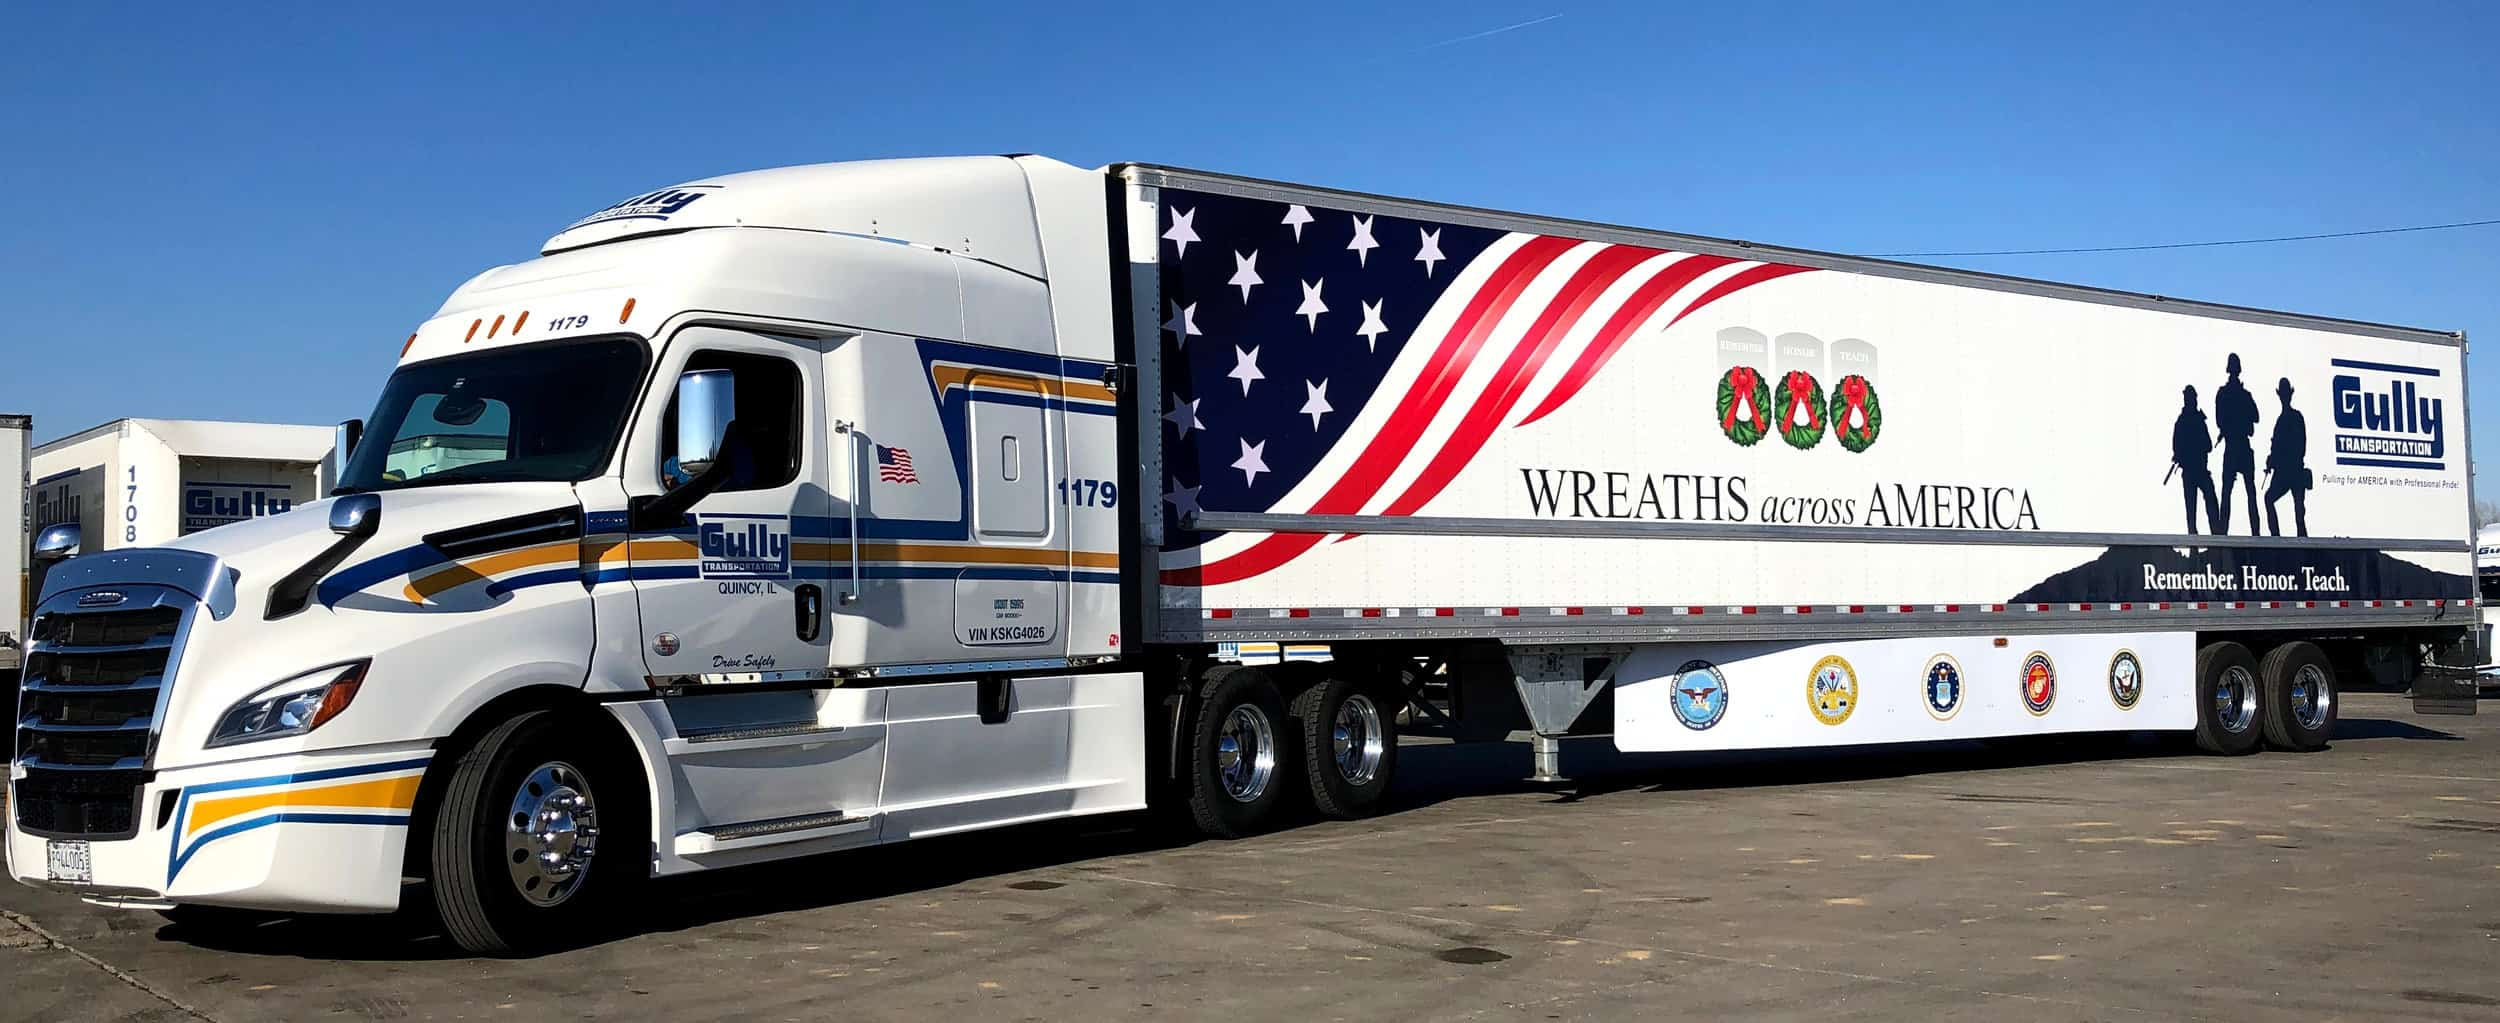 Photo of Veteran driver hauls wreaths to Arlington National Cemetary in honor of son killed in Iraq